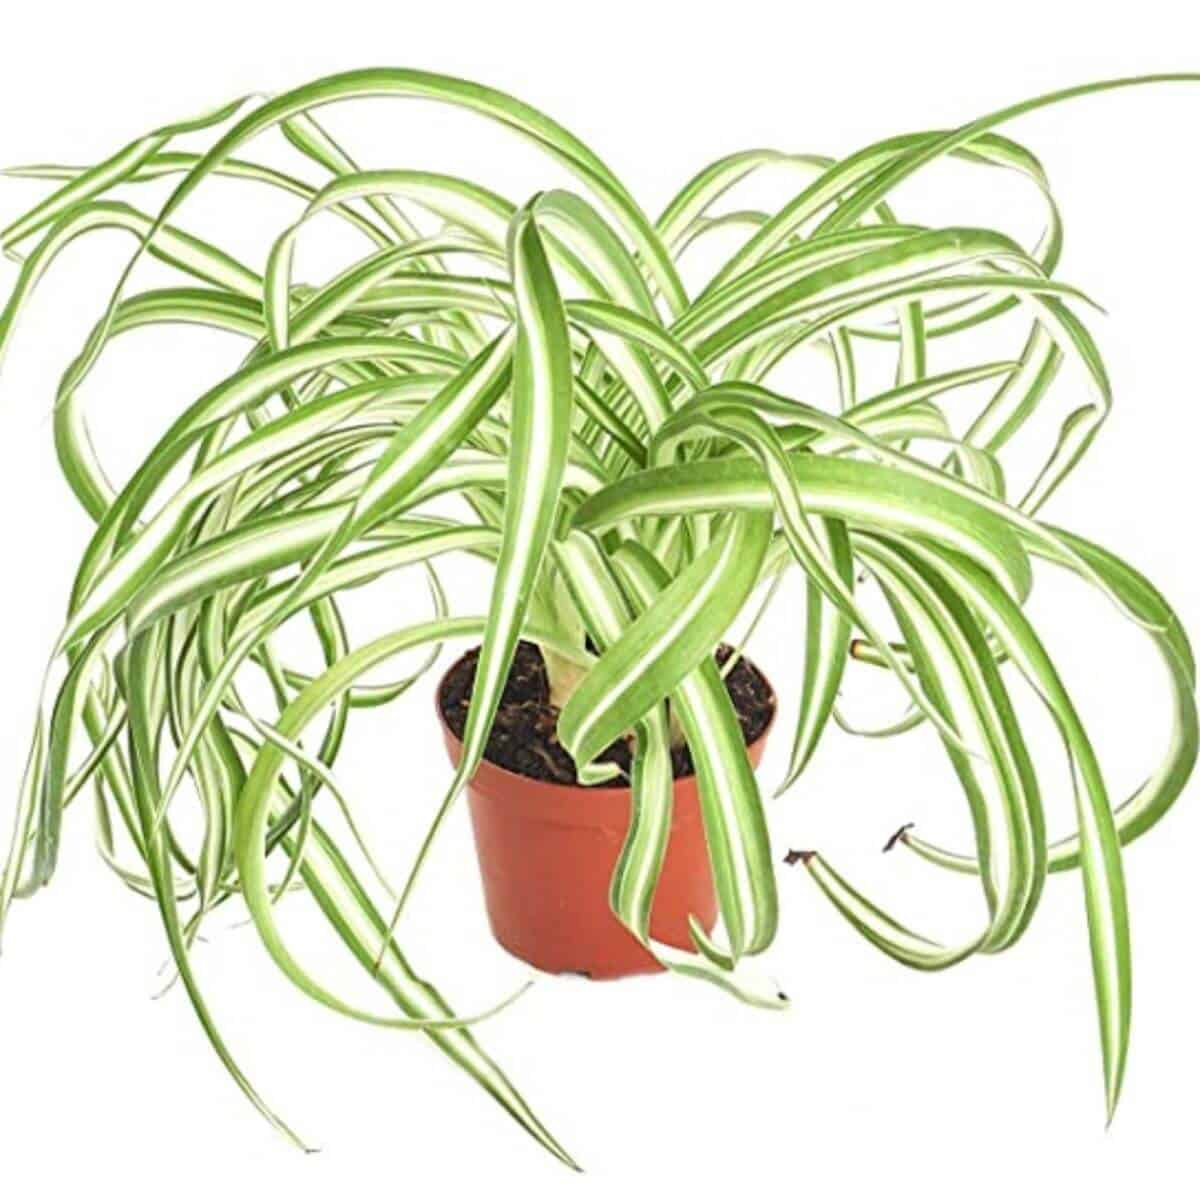 Spider plant in a brown pot.